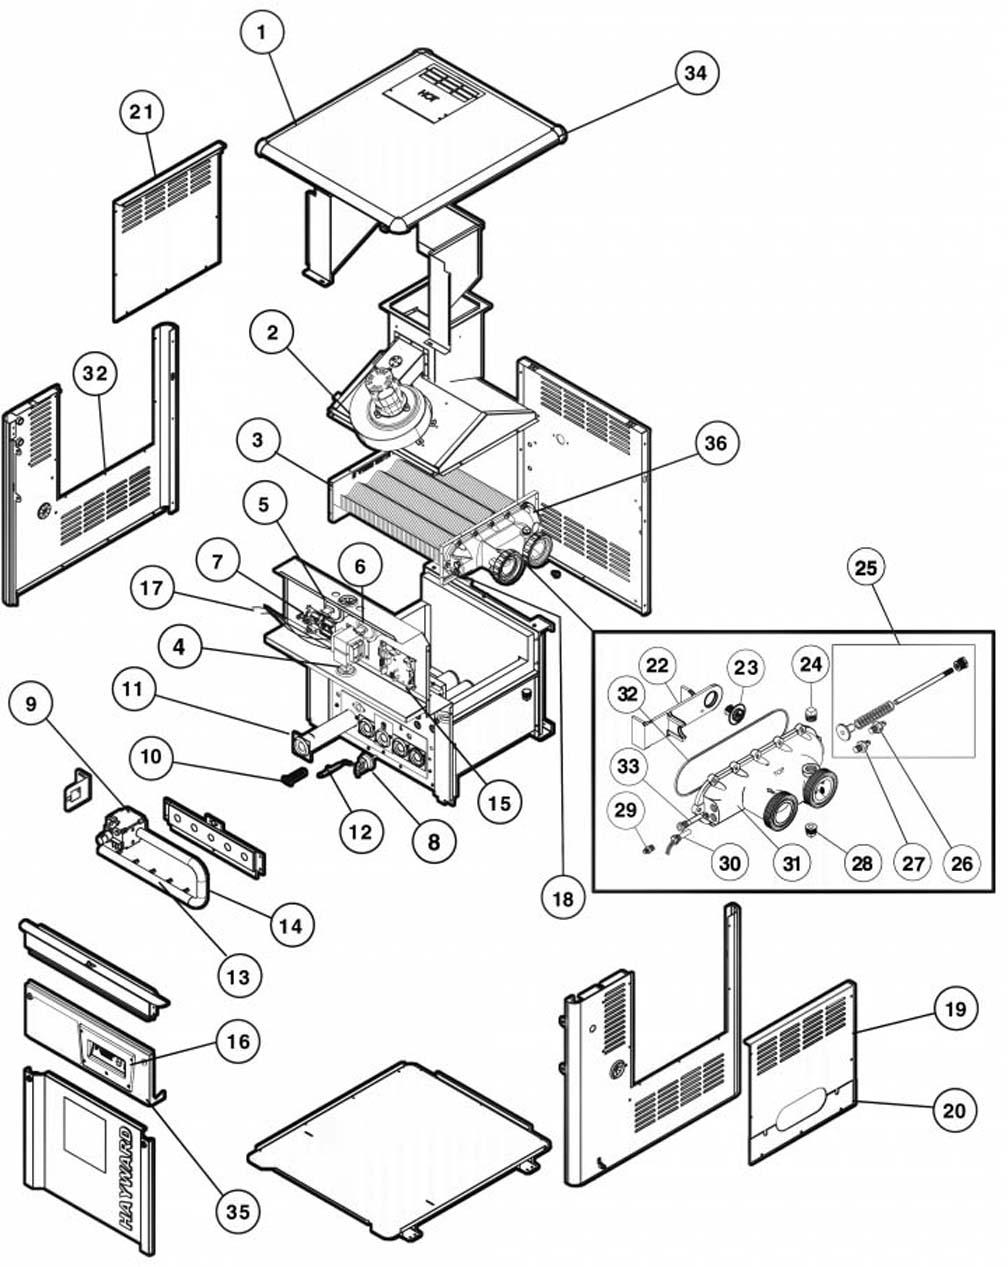 Wiring Diagram For Duraflame Electric Fire Place Wiring